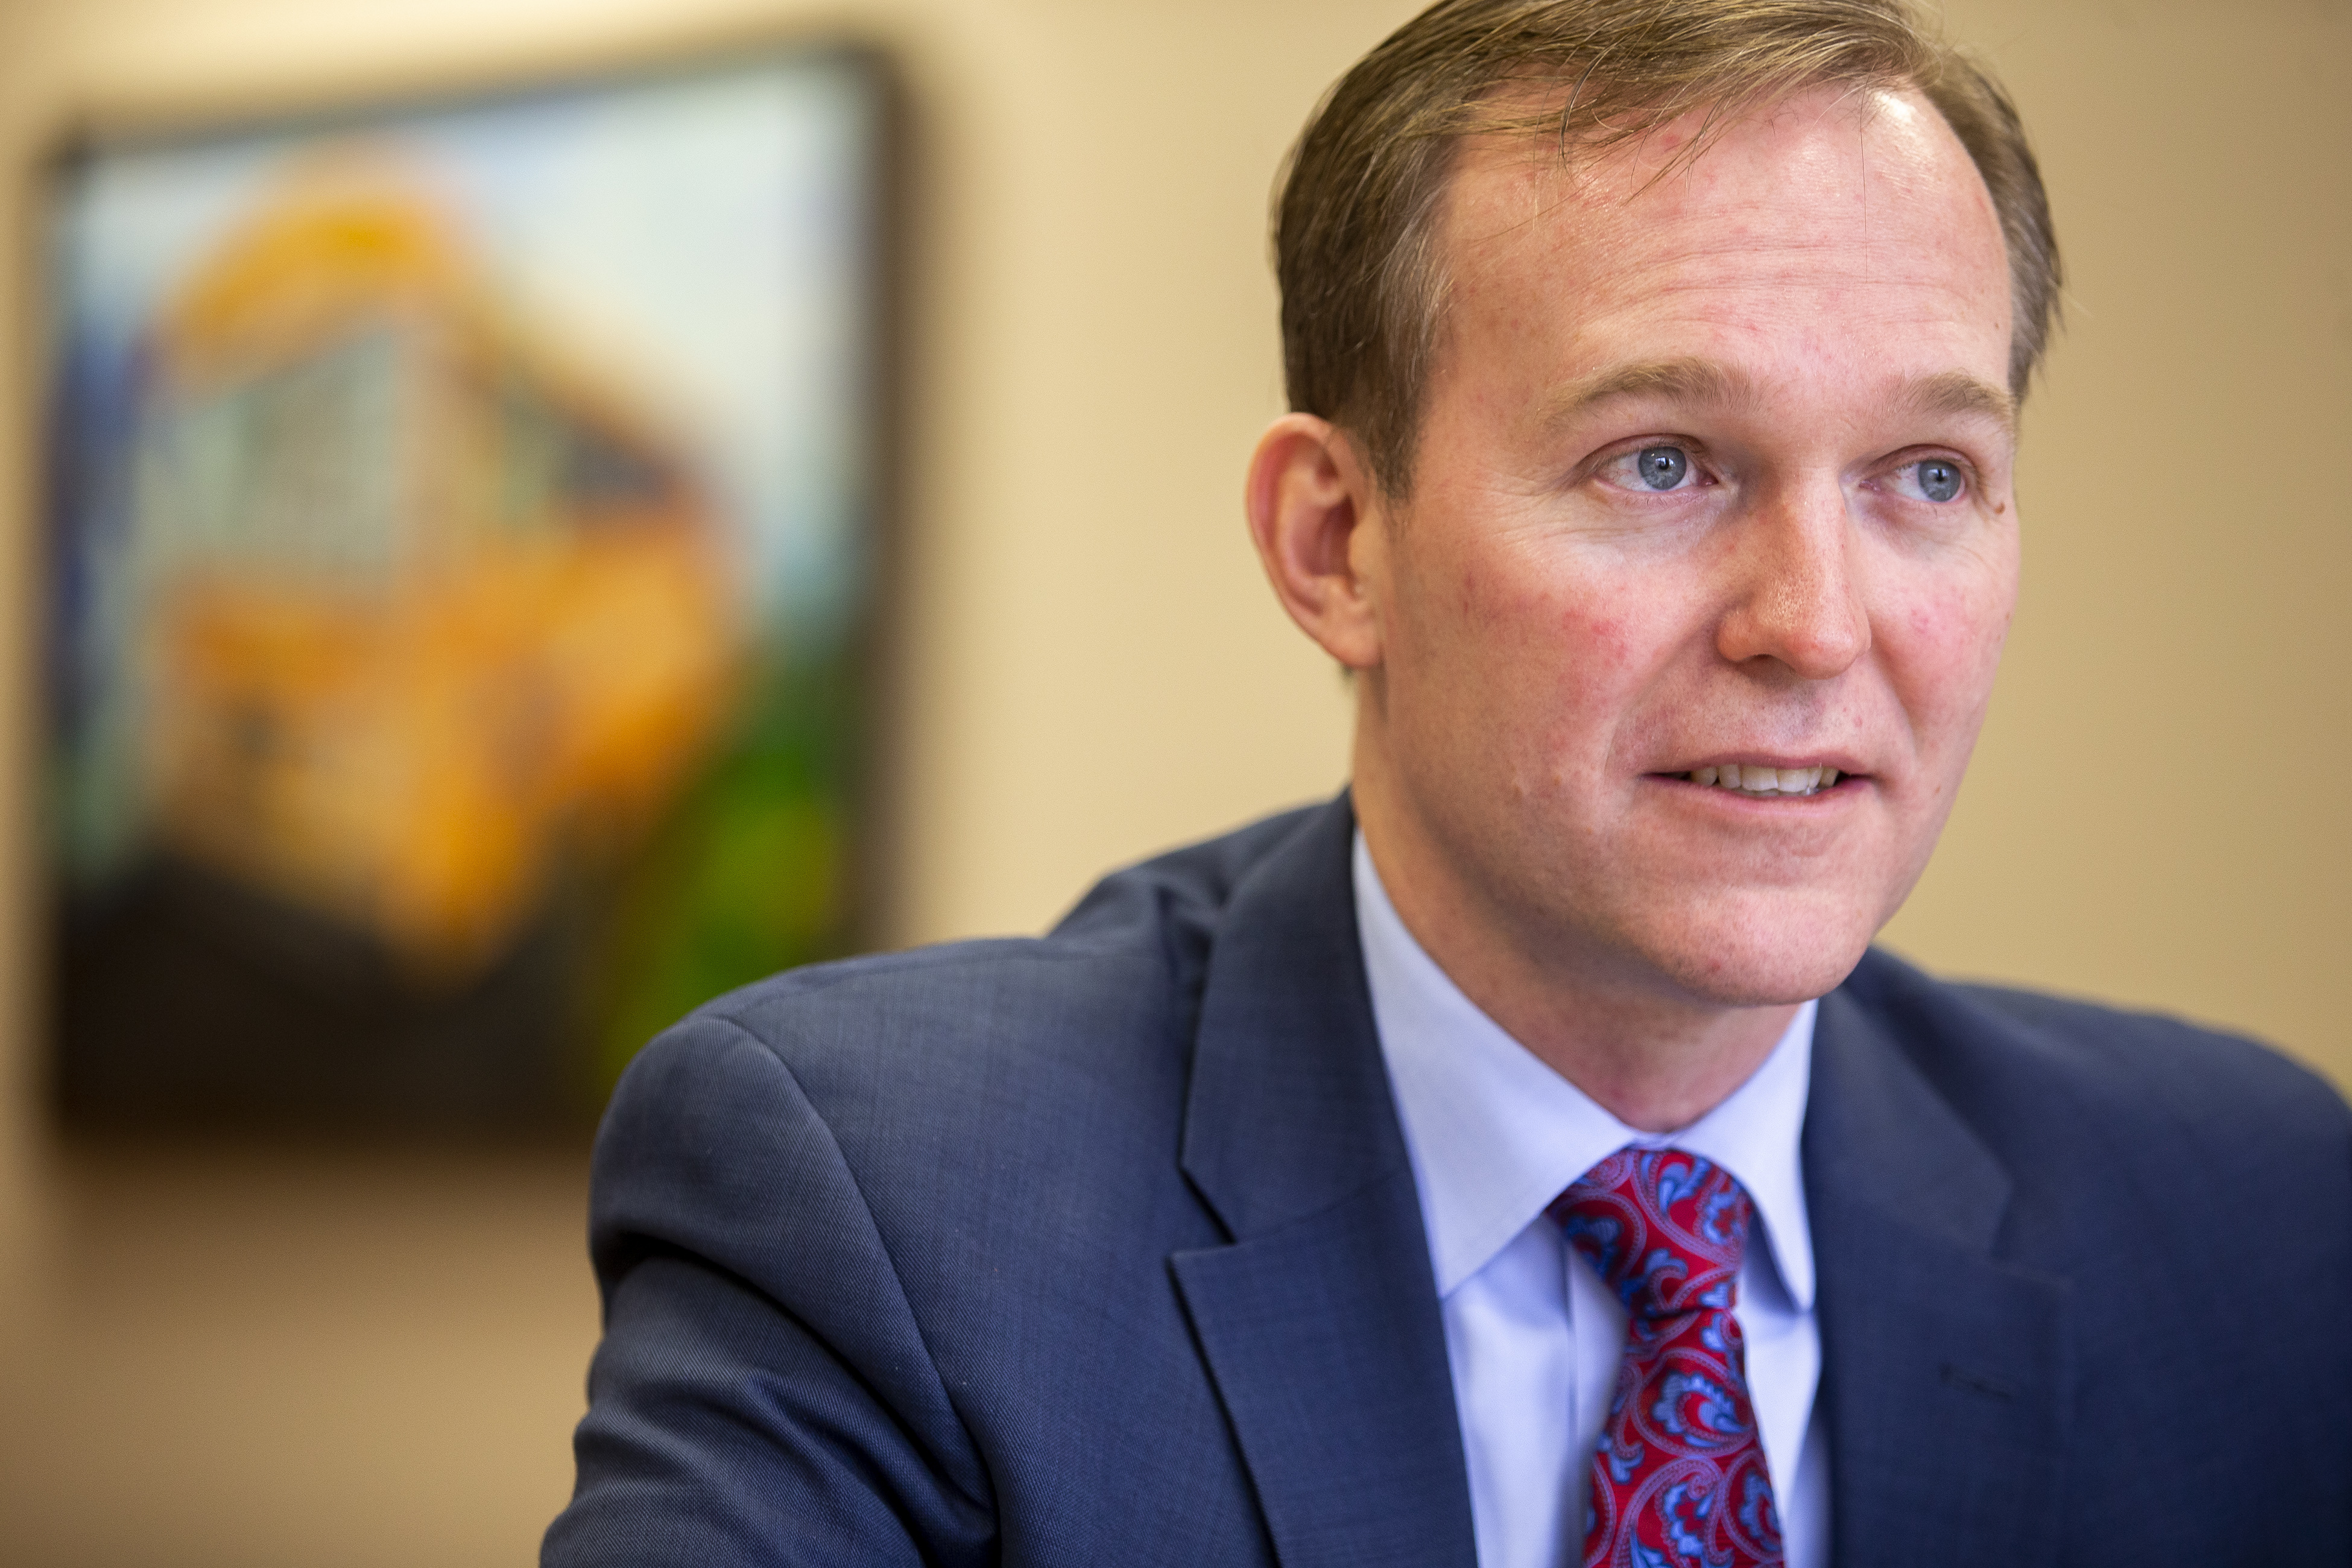 Congressman-elect Ben McAdams talks about his hopes and expectations as he prepares for his move to Washington D.C. during an interview at the Salt Lake County complex on Monday, Dec. 17, 2018.